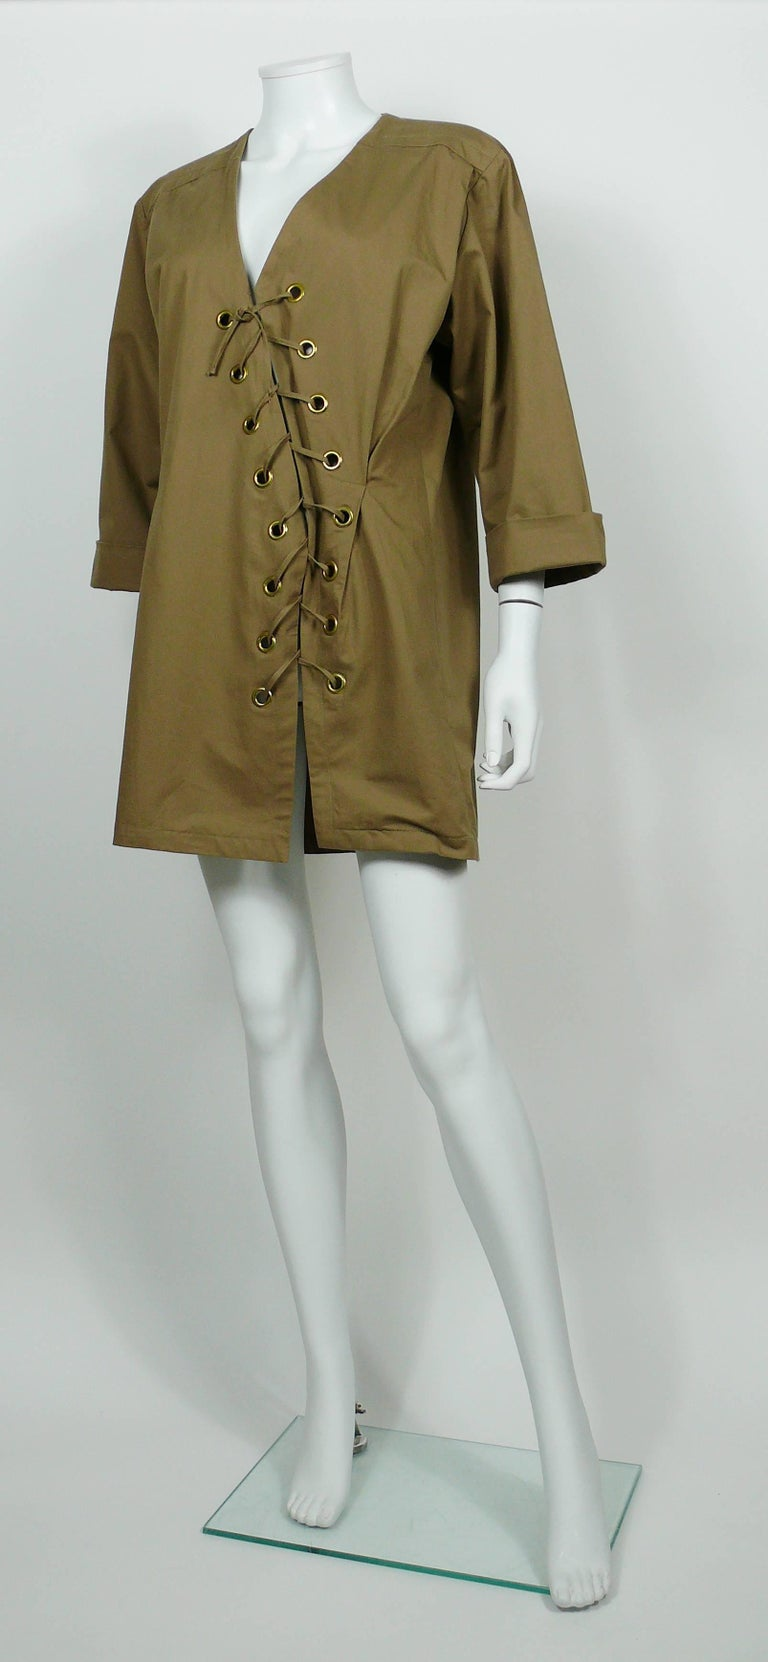 Yves Saint Laurent YSL Iconic Vintage Cotton Safari Tunic Dress, 1990s  6